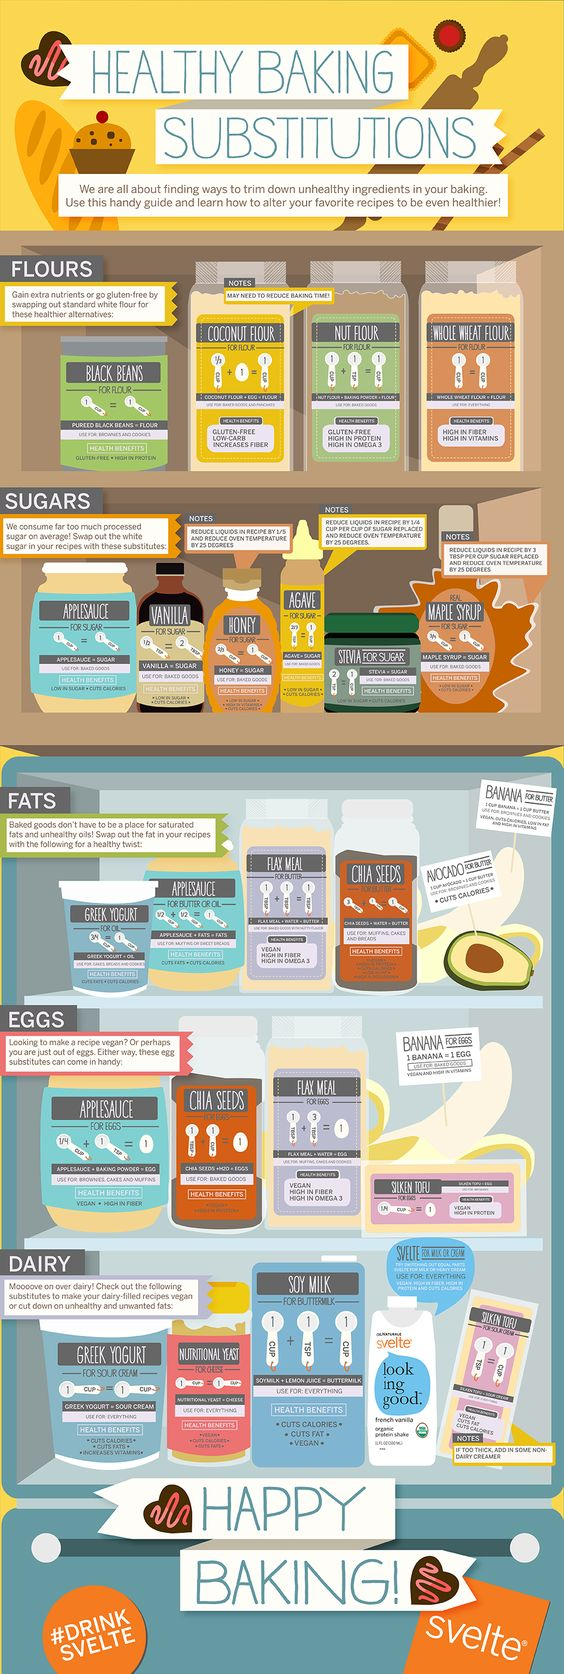 Healthy baking substitutes, Healthy baking and Read more ...